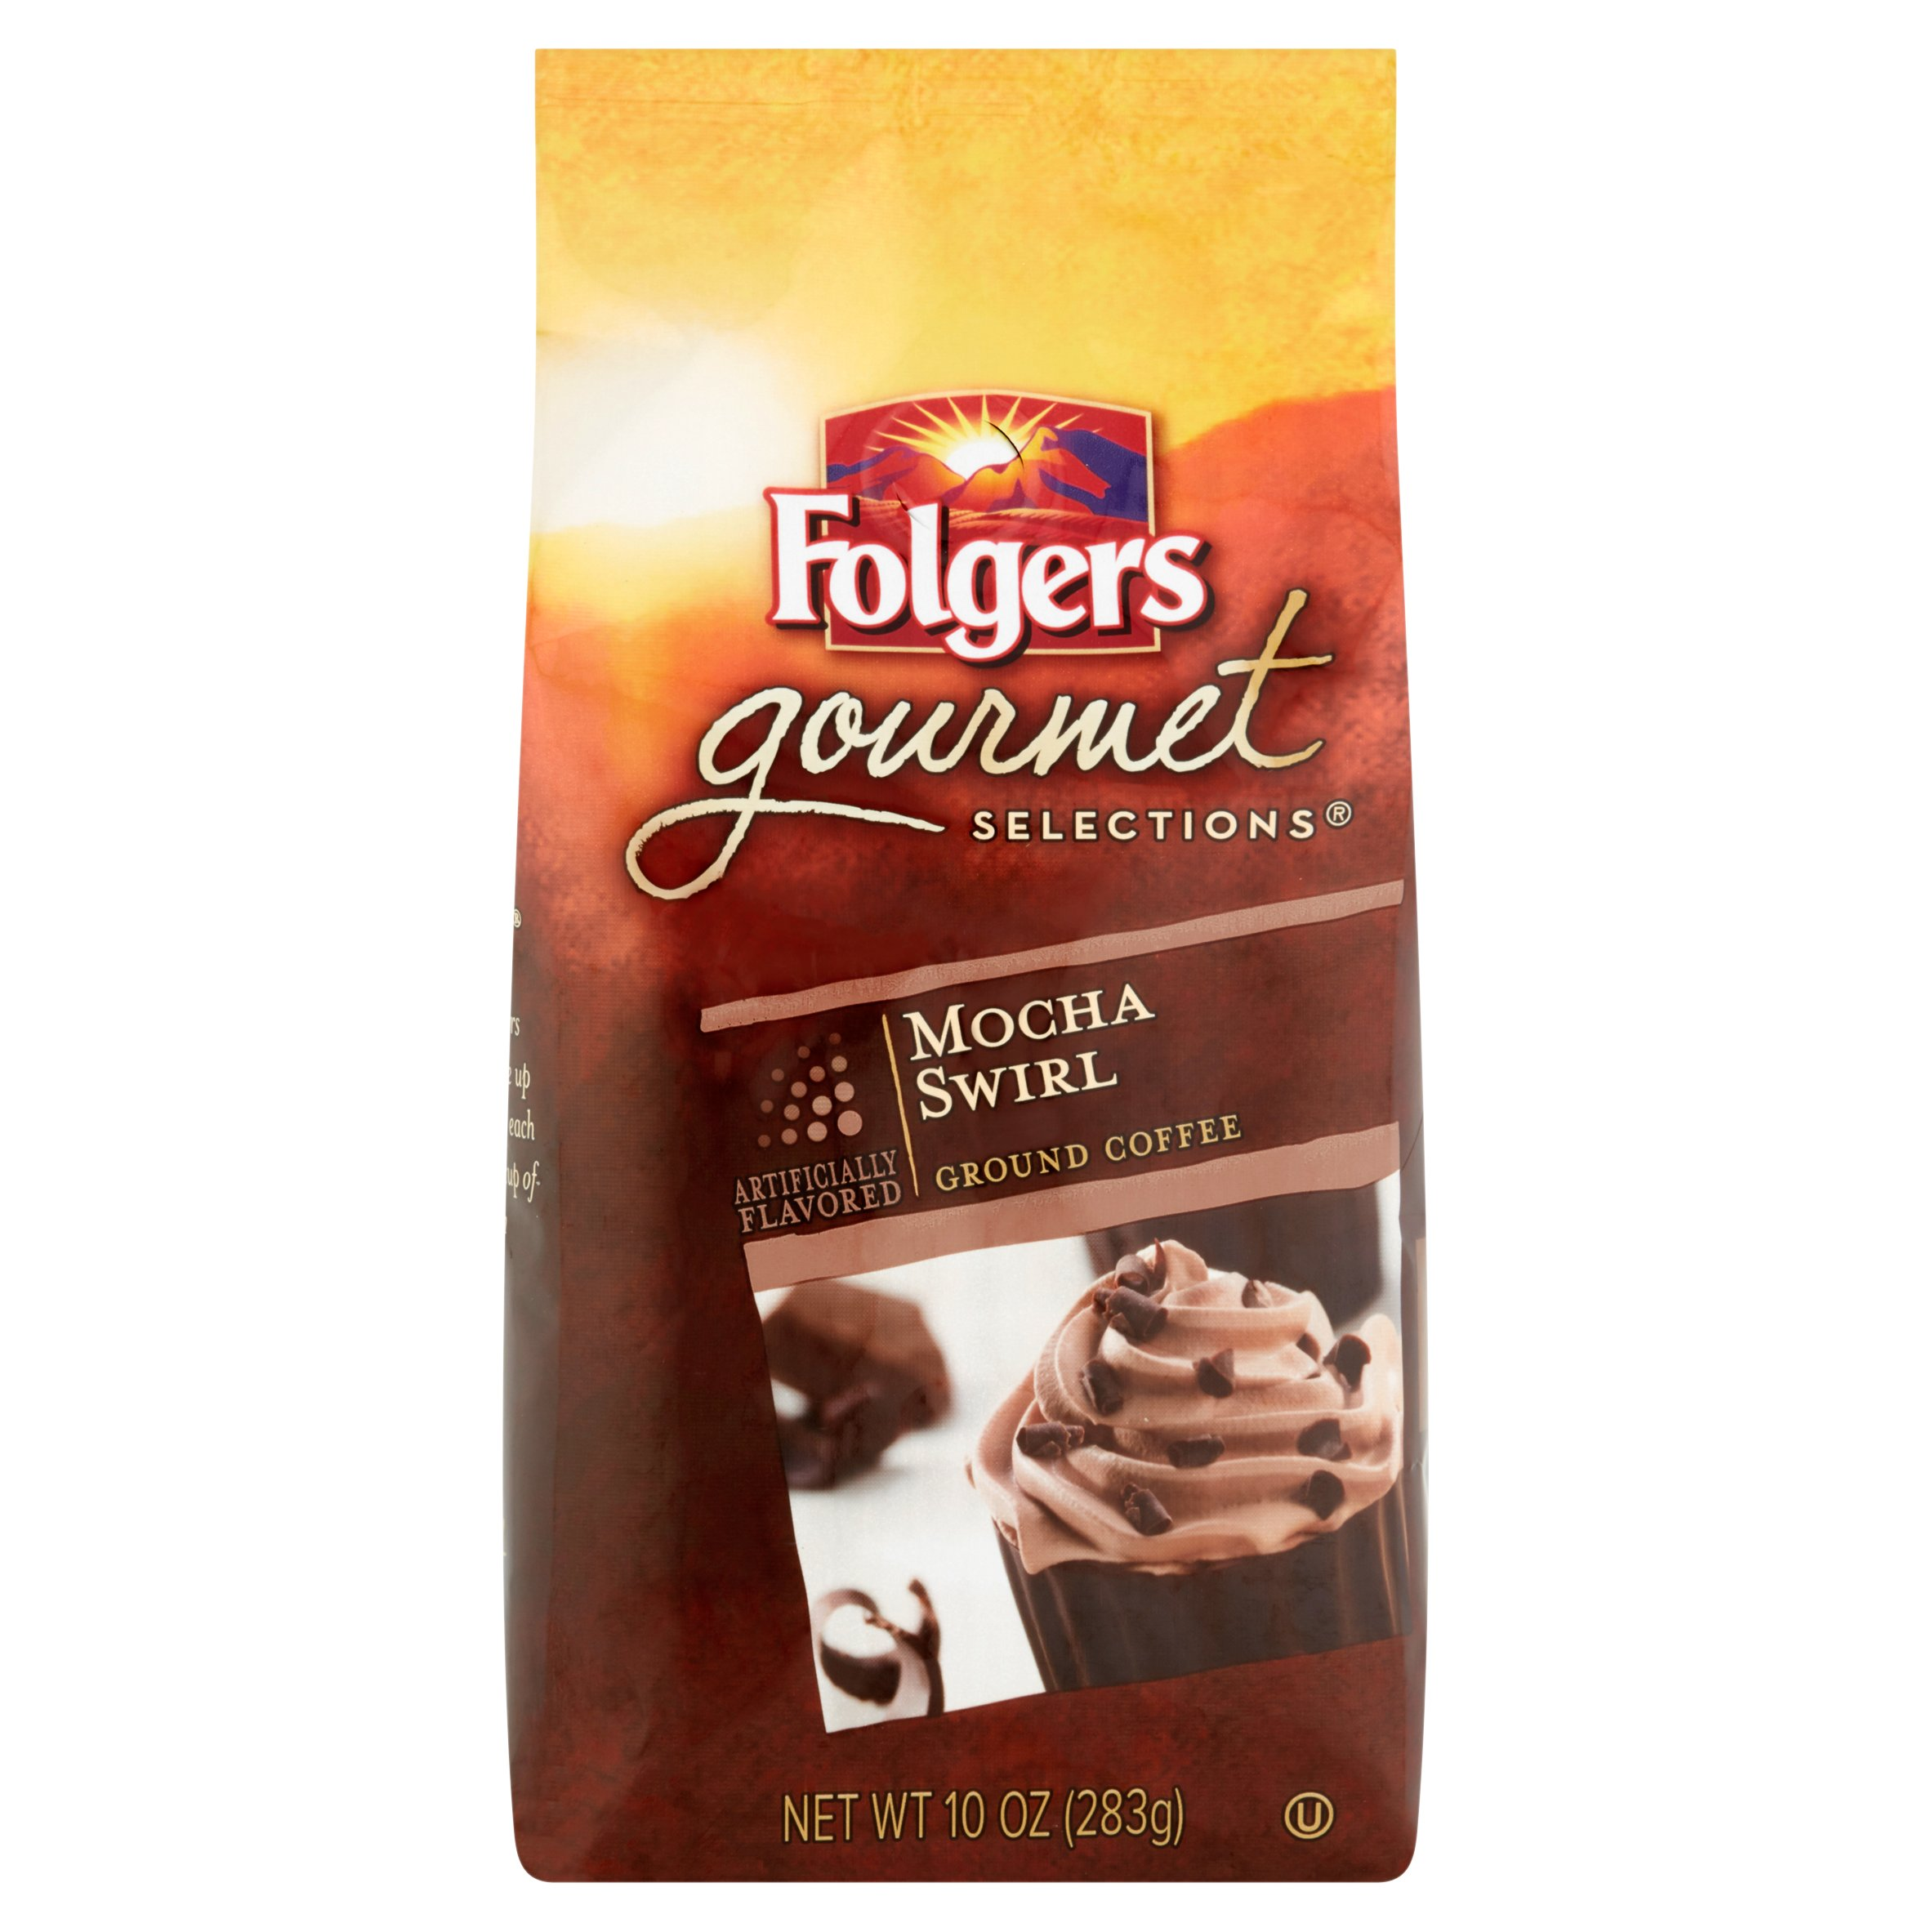 Folgers Gourmet Selections Mocha Swirl Ground Coffee, 10 oz